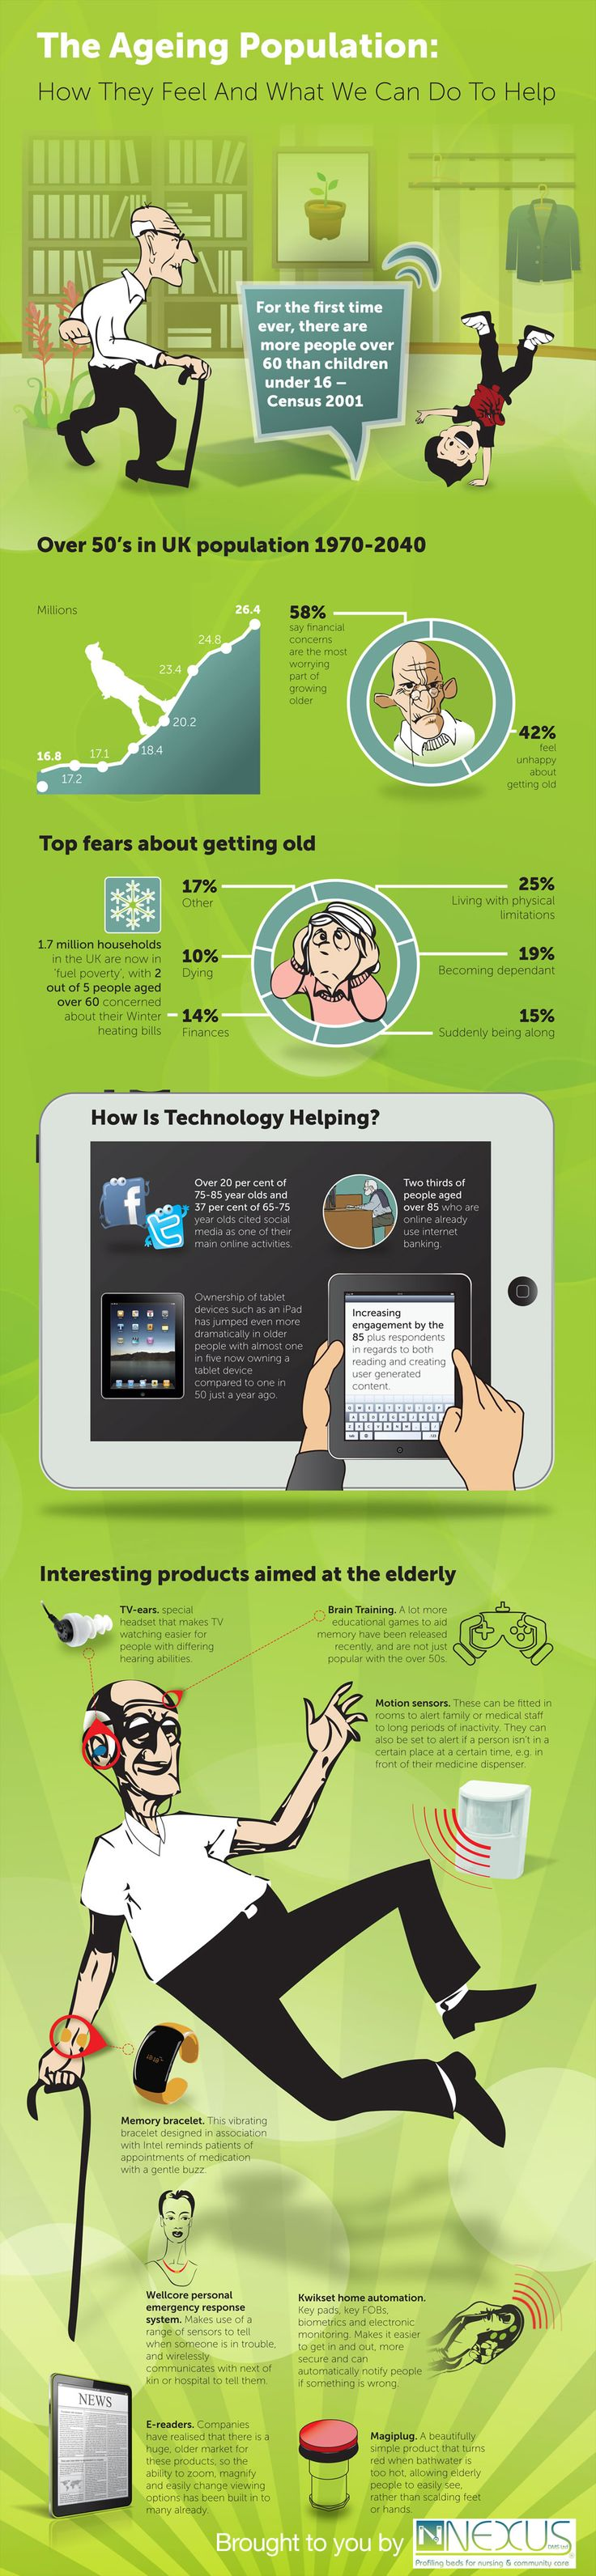 How is technology helping the #aging population live longer, healthier lives? #infographic #seniors